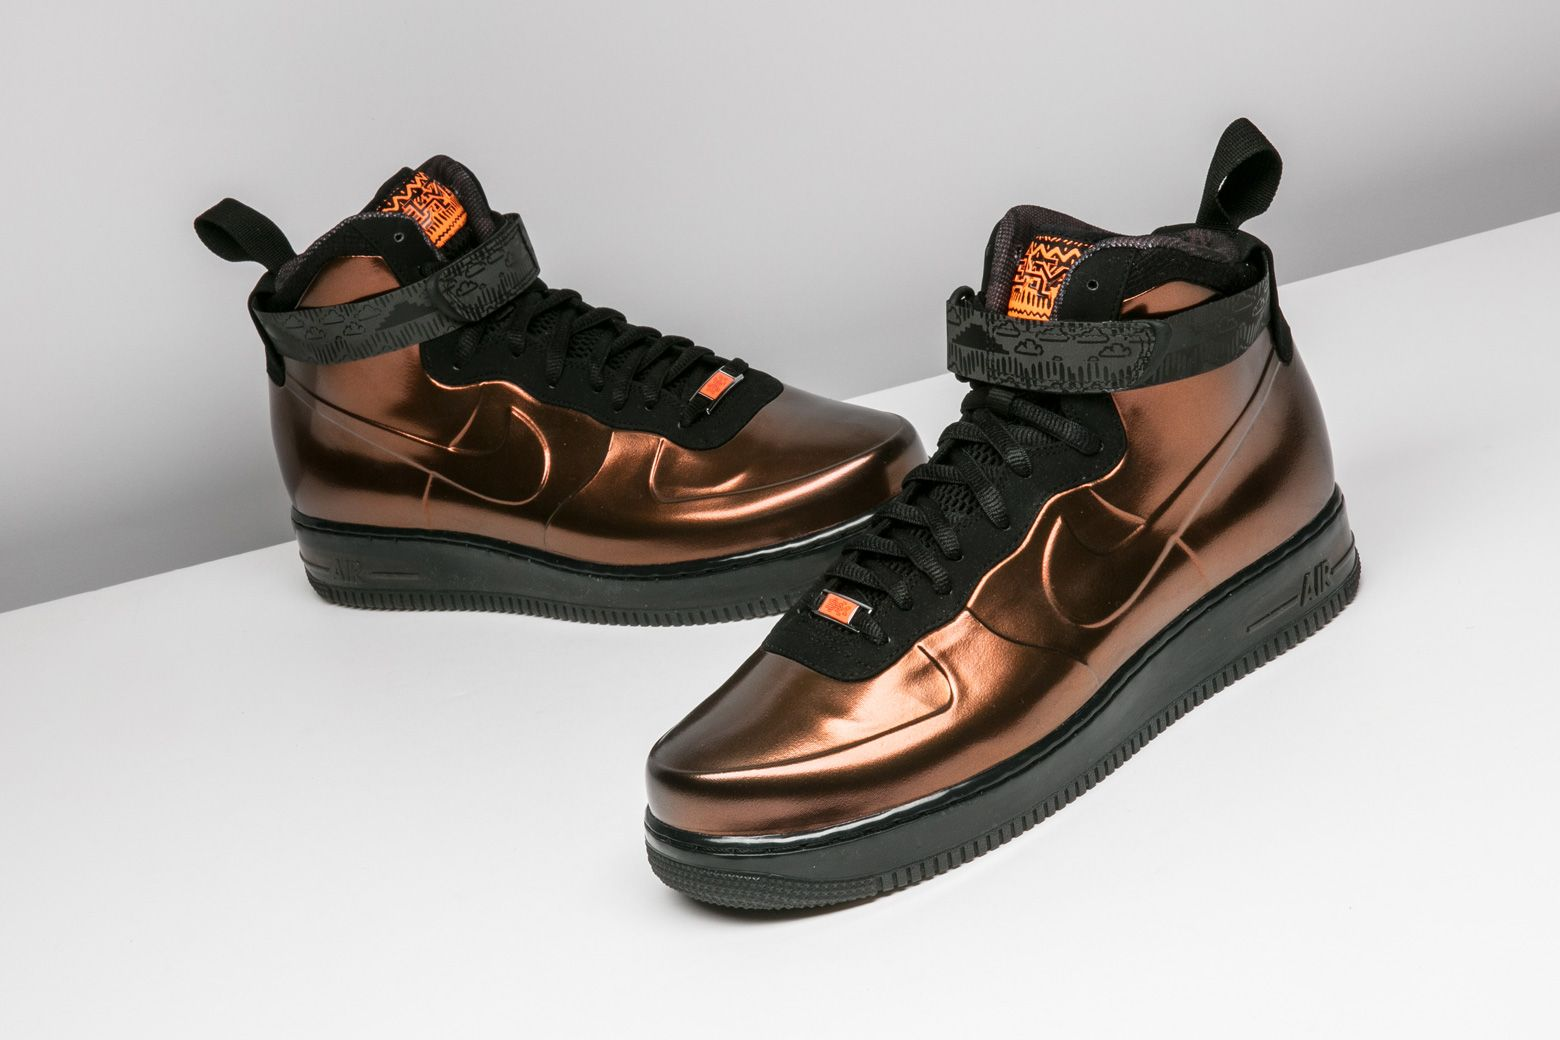 3e14831903d Released during Black History Month, this Nike Air Force 1 Foamposite  features an eye-